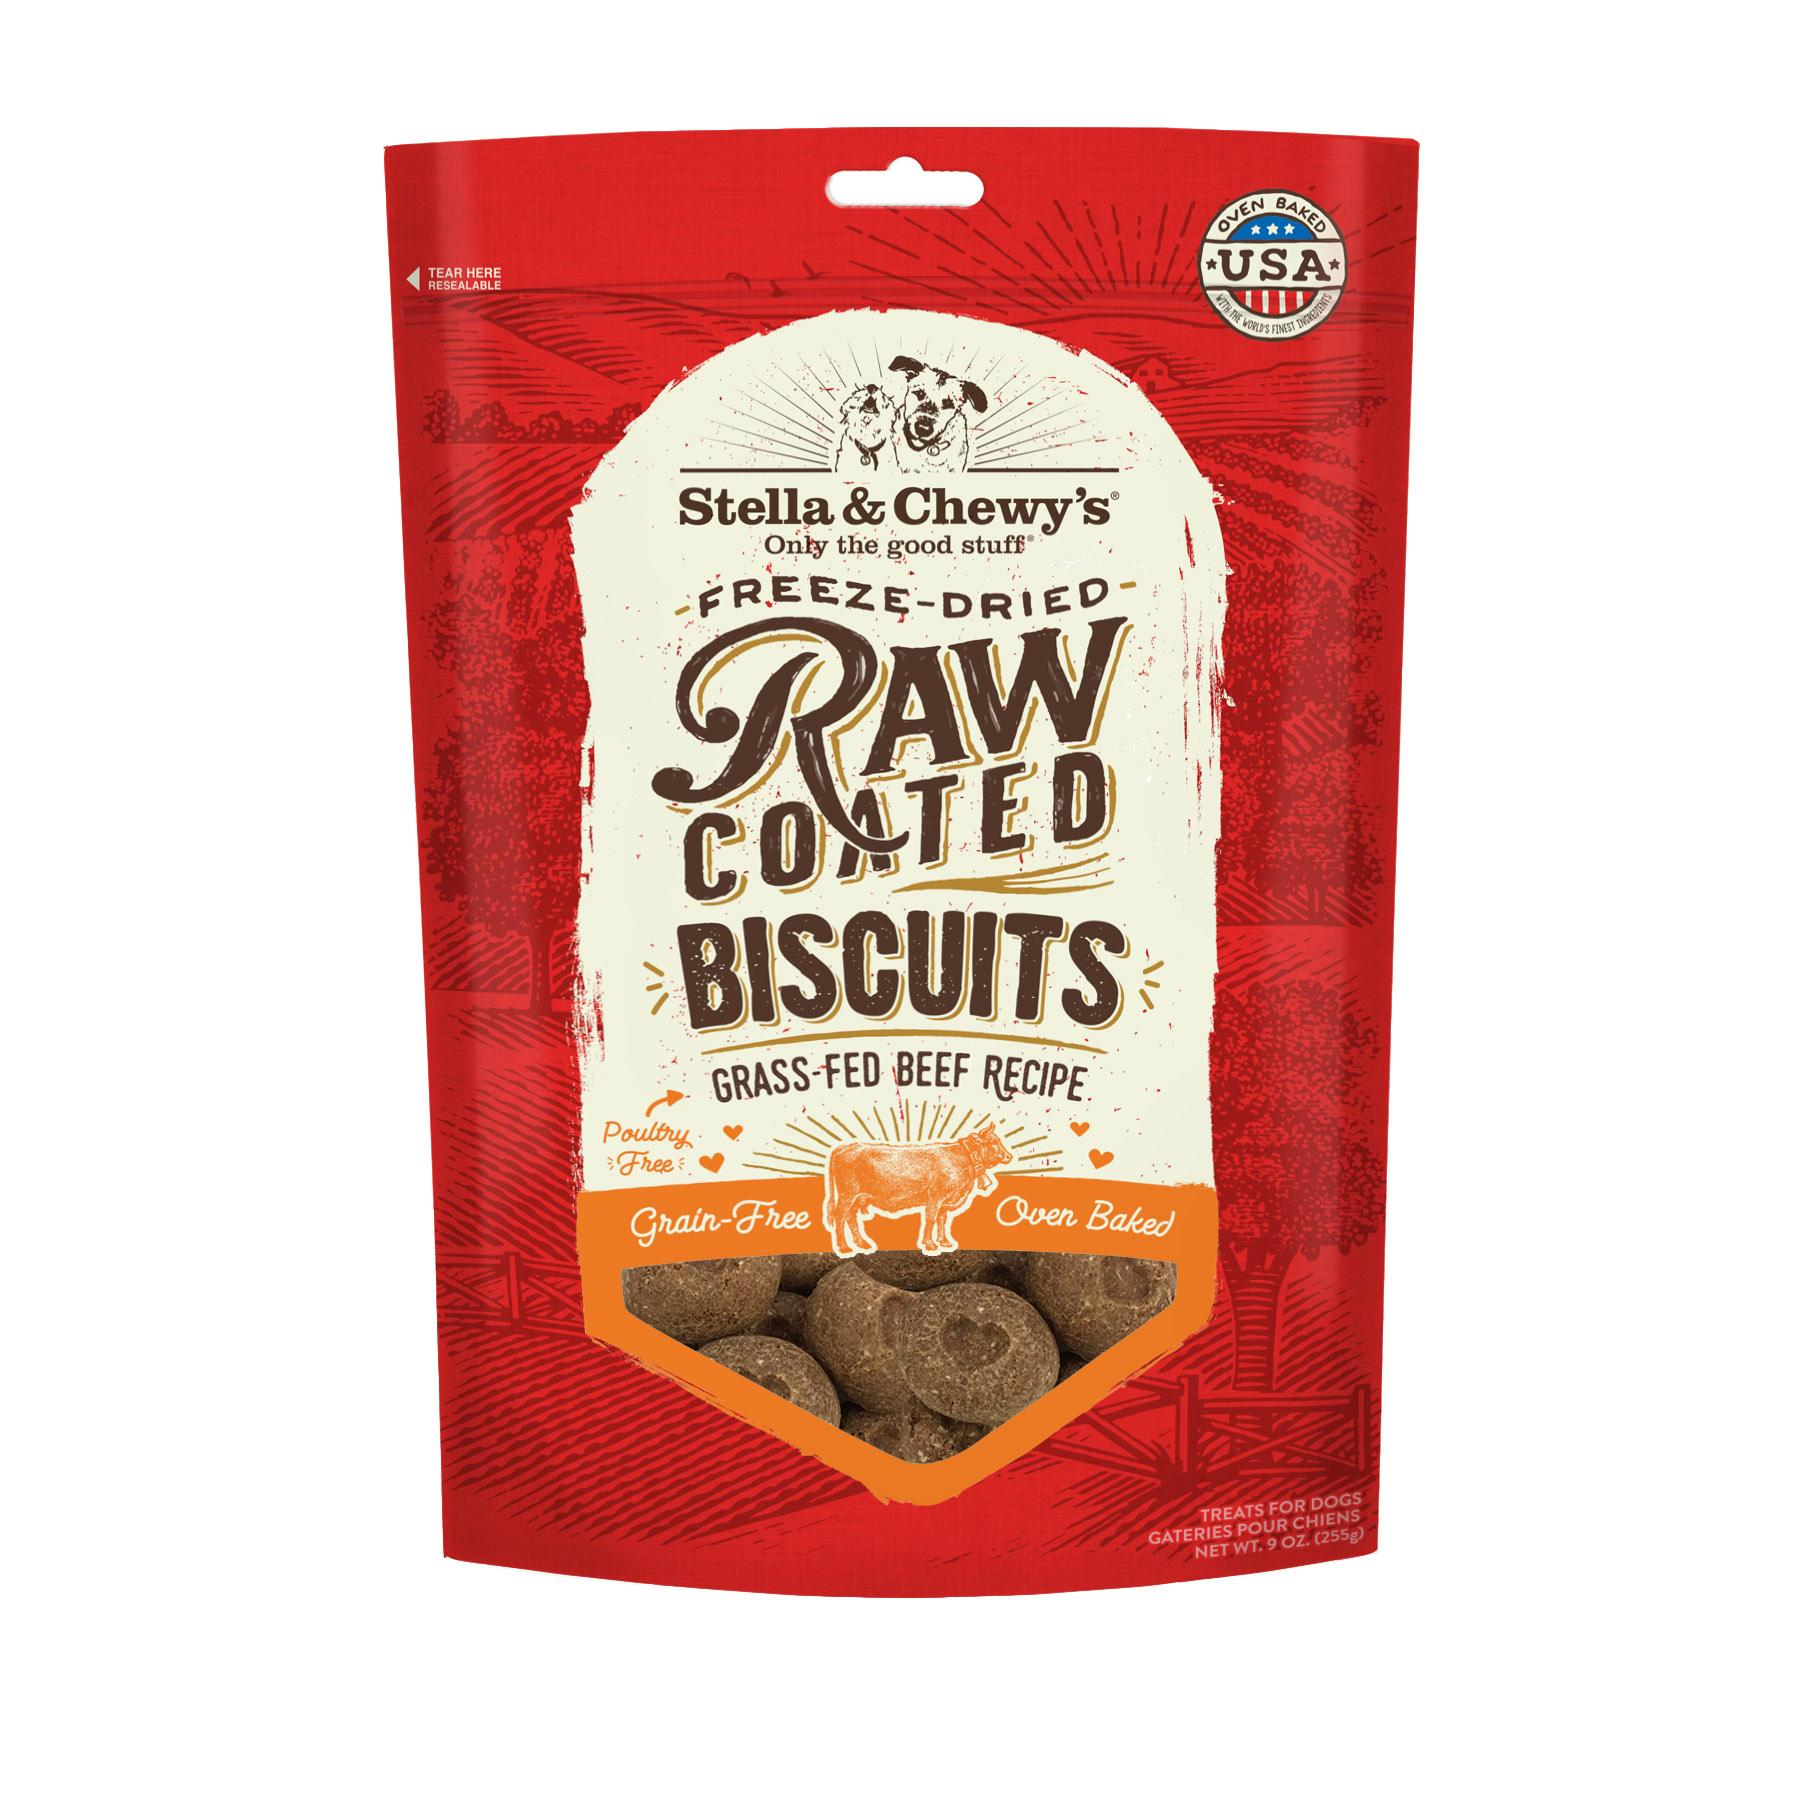 Stella & Chewy's Raw Coated Biscuits Grass-Fed Beef Recipe Dog Treats, 9-oz